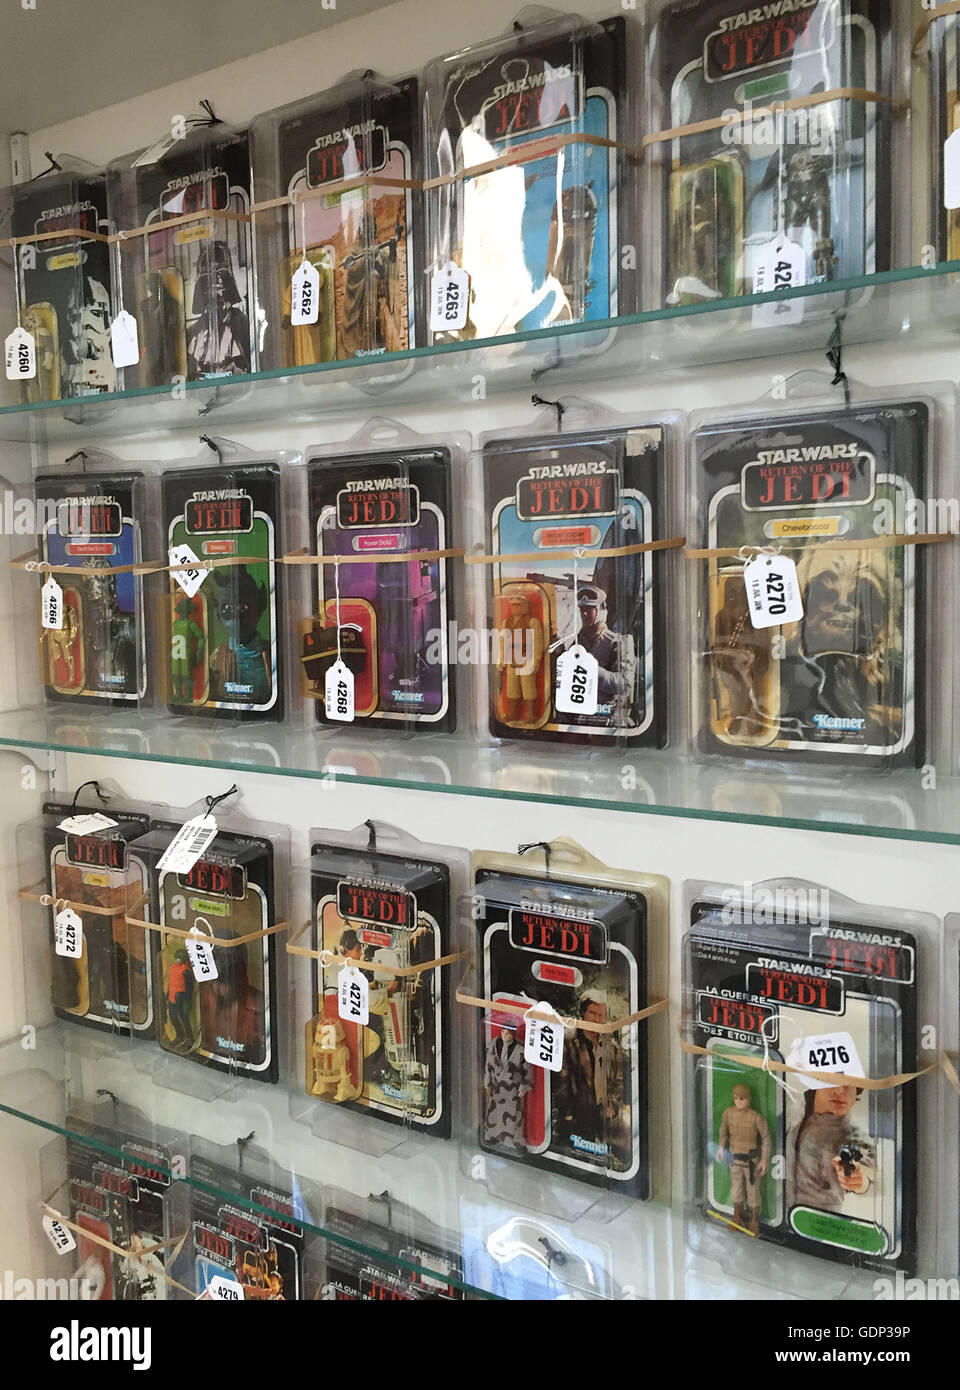 Some of the Star Wars figures which make up a large private collection of 700 items which are expected to bring in around £500,000 when they go under the hammer at Vectis Auctions in Thornaby, Teesside. Stock Photo